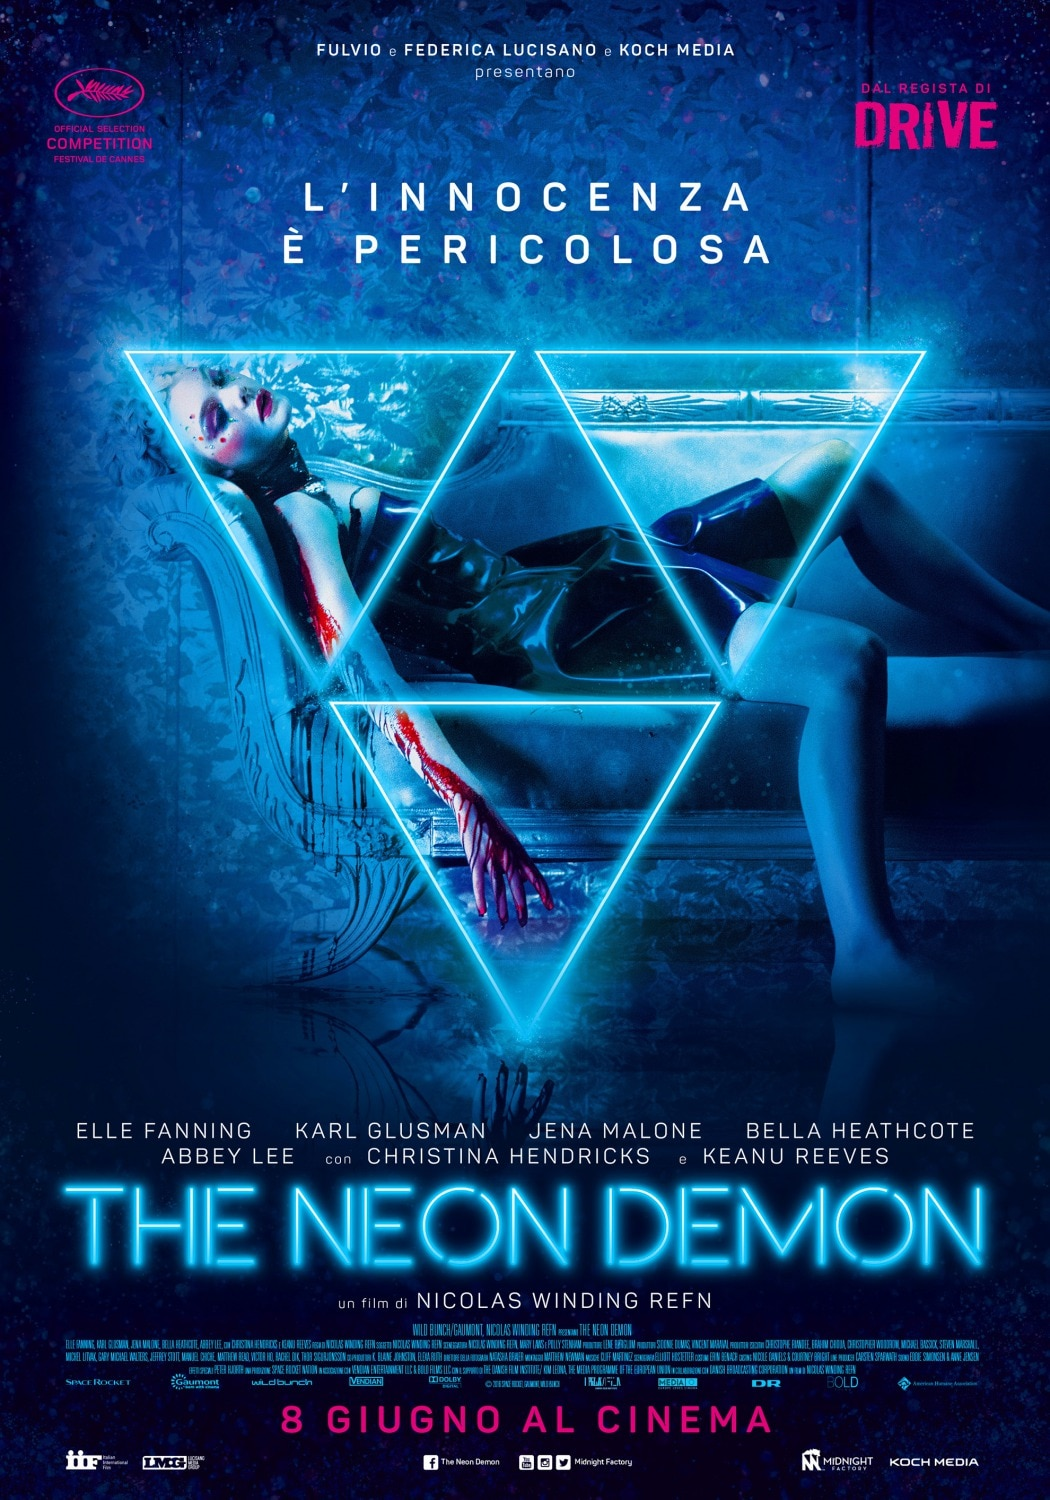 neon demon italy - New The Neon Demon UK Trailer Is Dangerous; Italian Poster Drips Blood